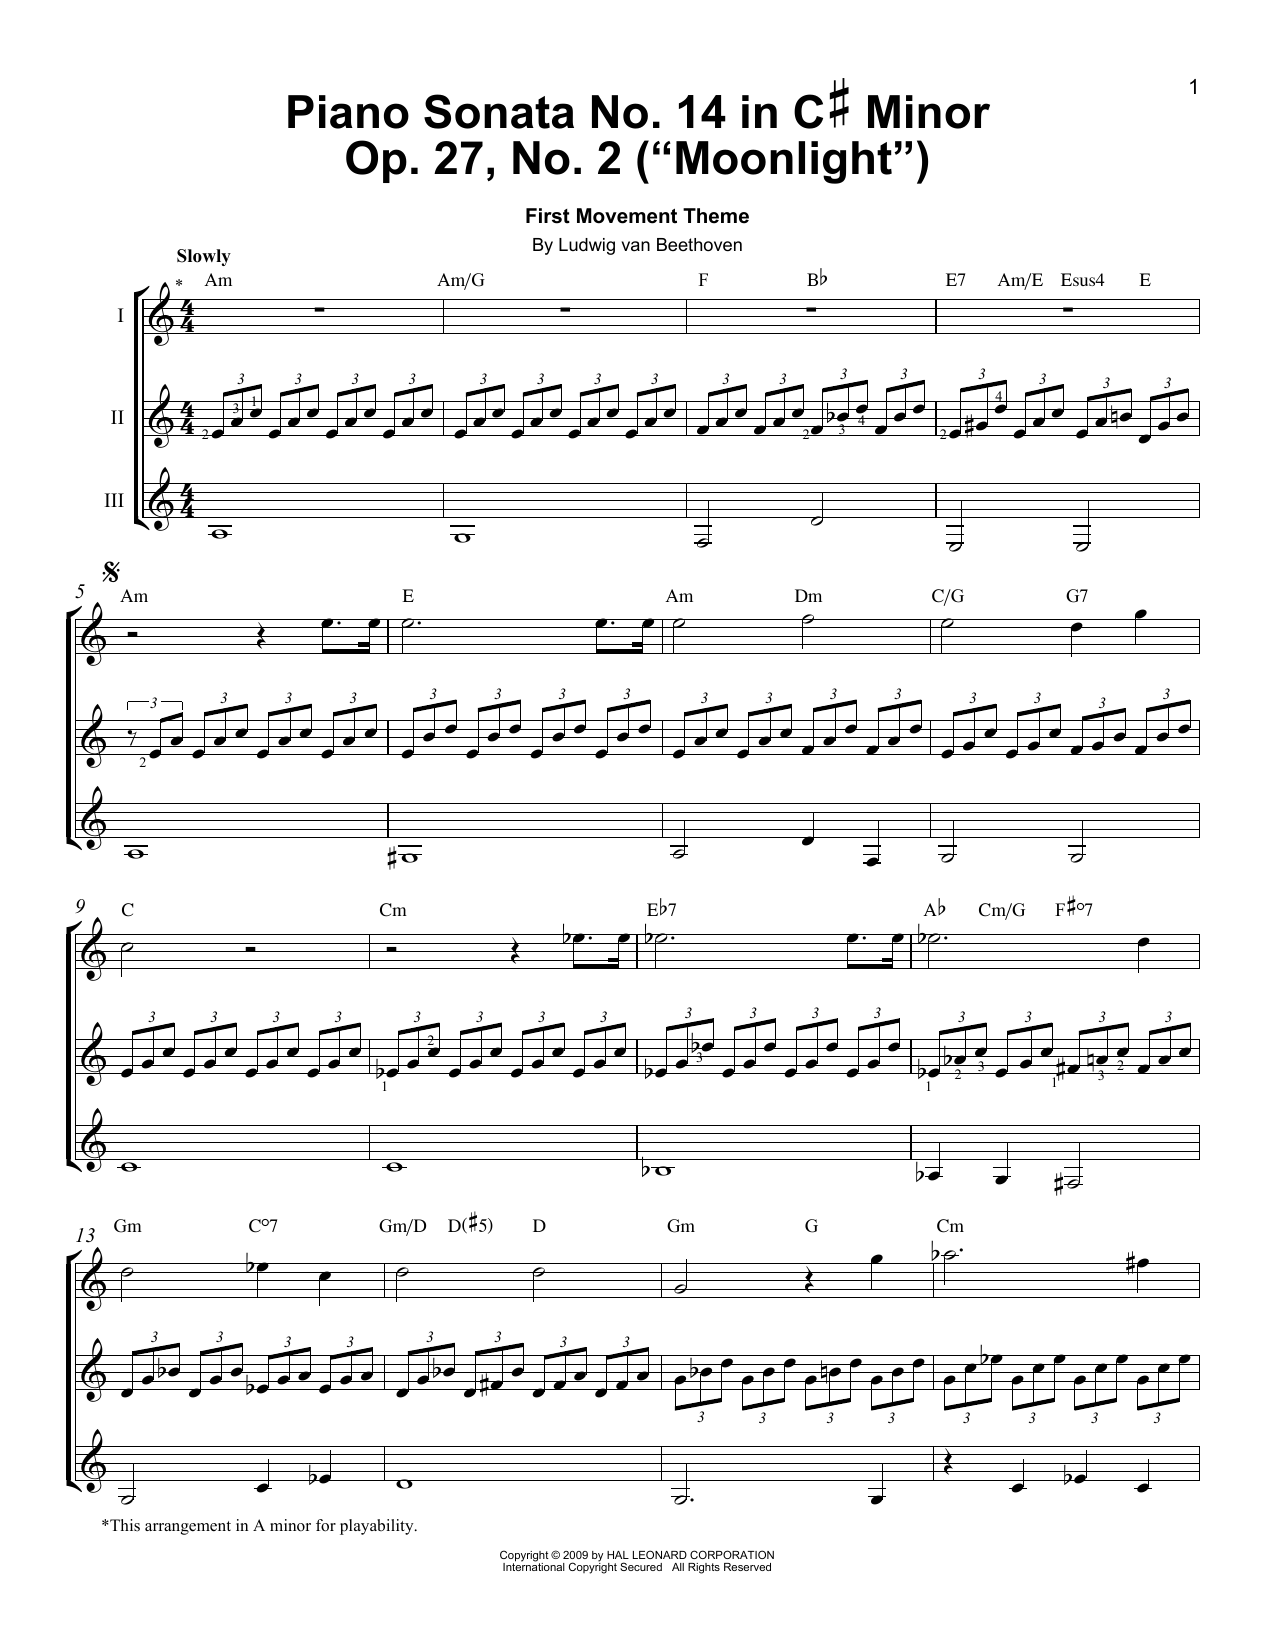 Download Ludwig van Beethoven 'Piano Sonata No. 14 In C# Minor (Moonlight) Op. 27 No. 2 First Movement Theme' Digital Sheet Music Notes & Chords and start playing in minutes